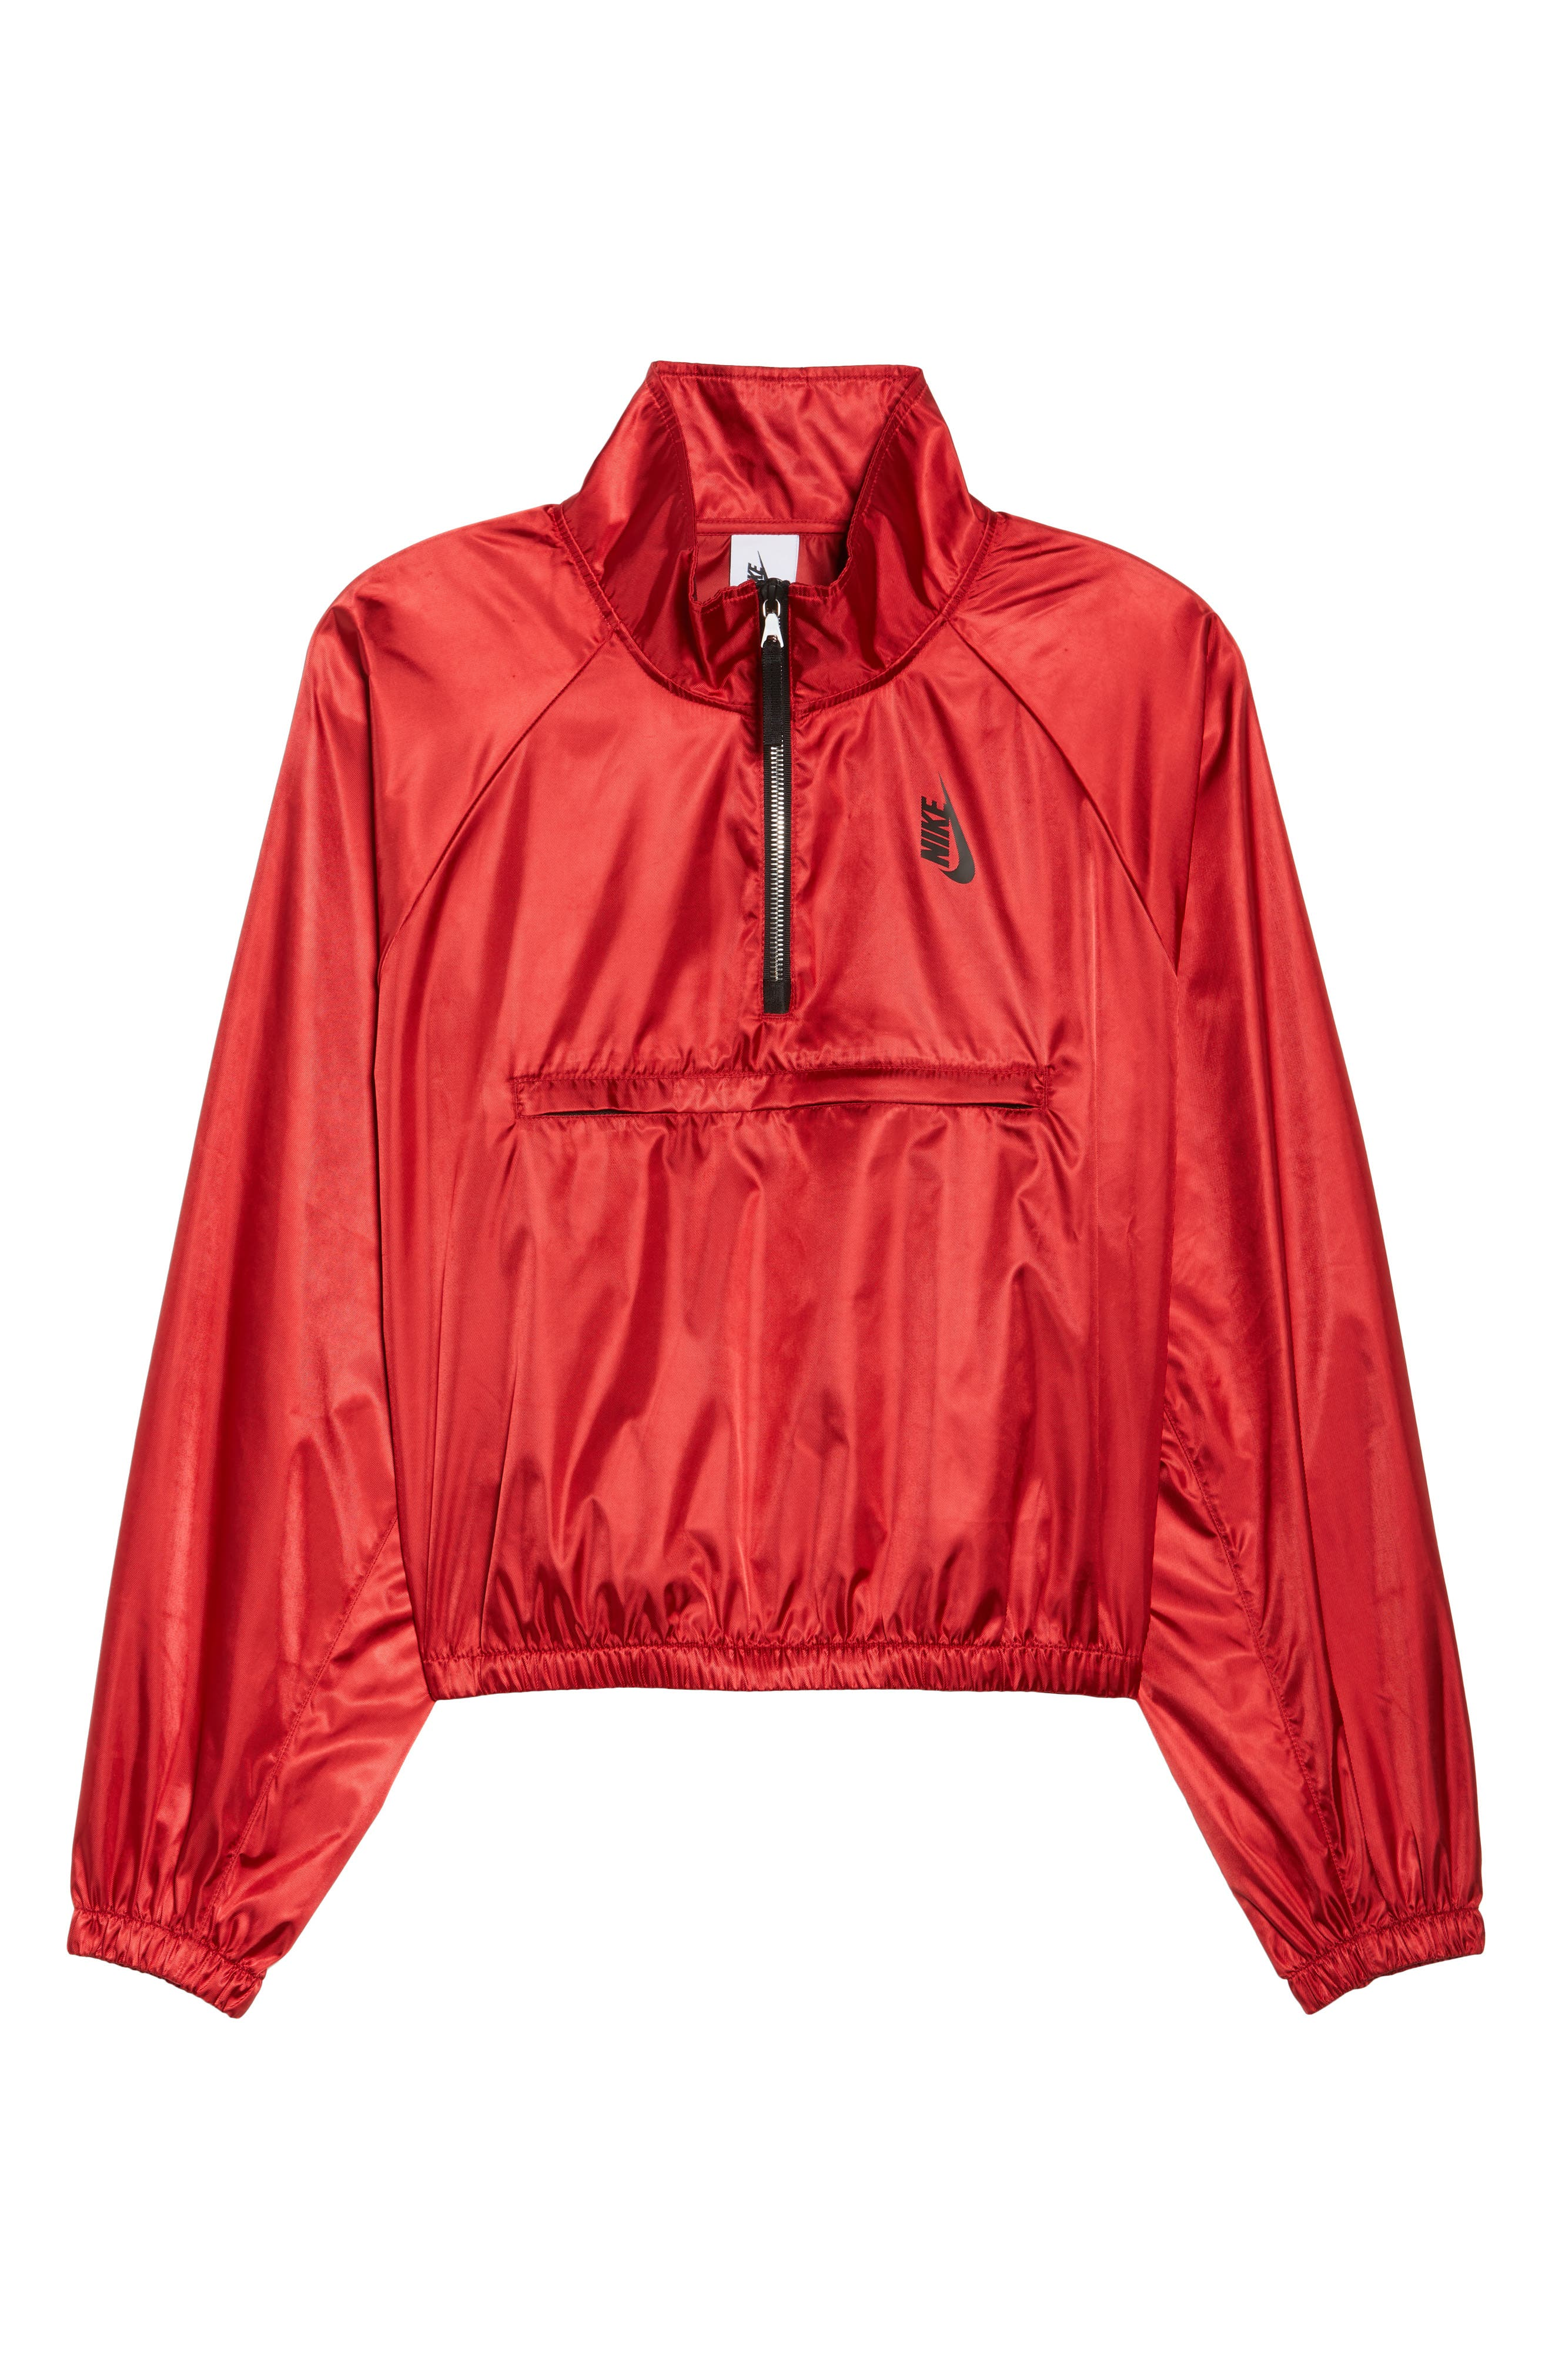 NikeLab Collection Satin Half Zip Top,                             Alternate thumbnail 7, color,                             600